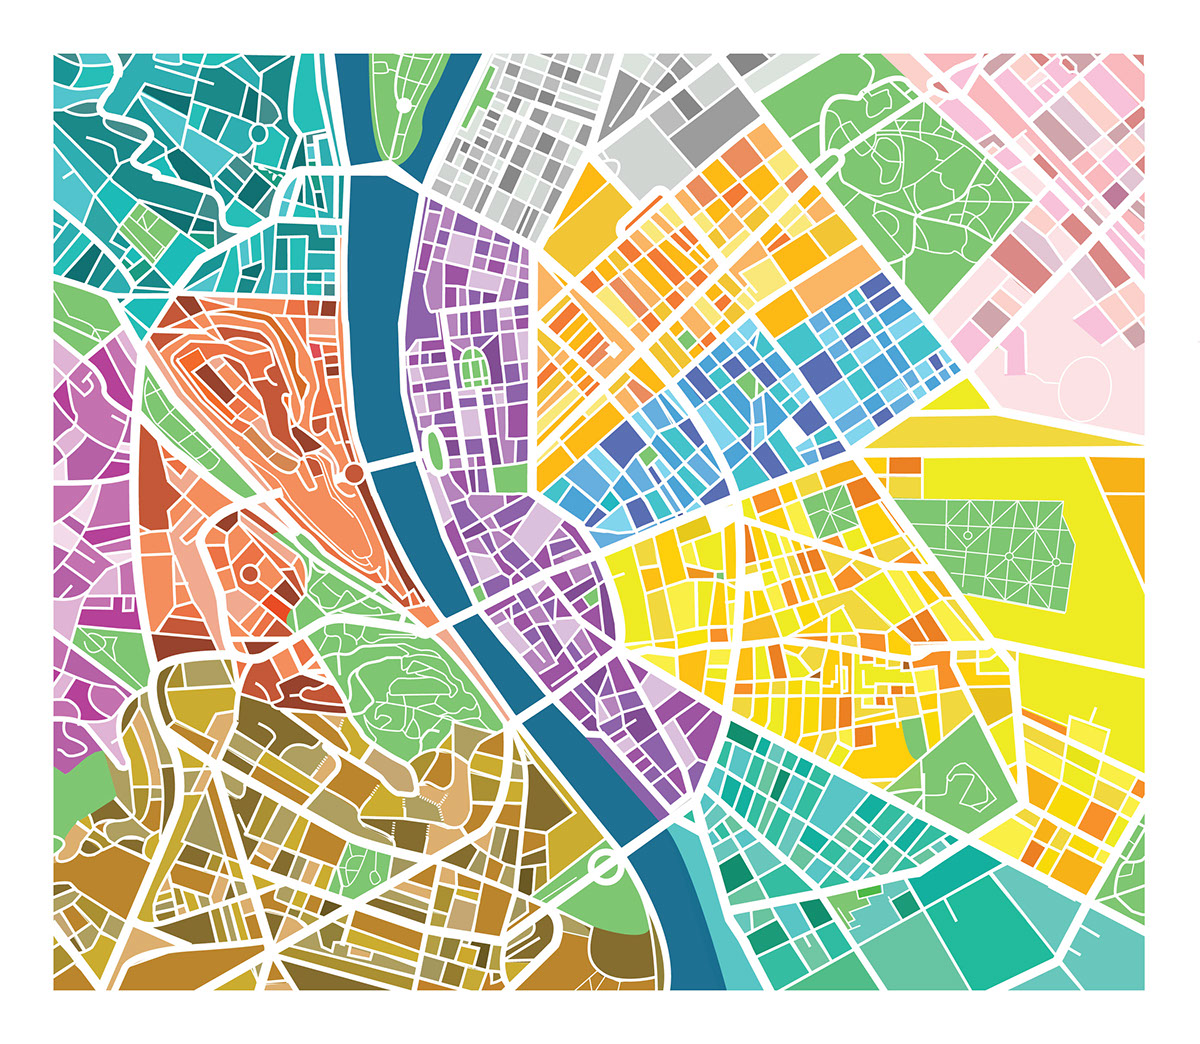 map map design Budapest map zoom Fun Map sightseeing journey egg map city map Travel Travelling travel design City Tour tourism Gadget